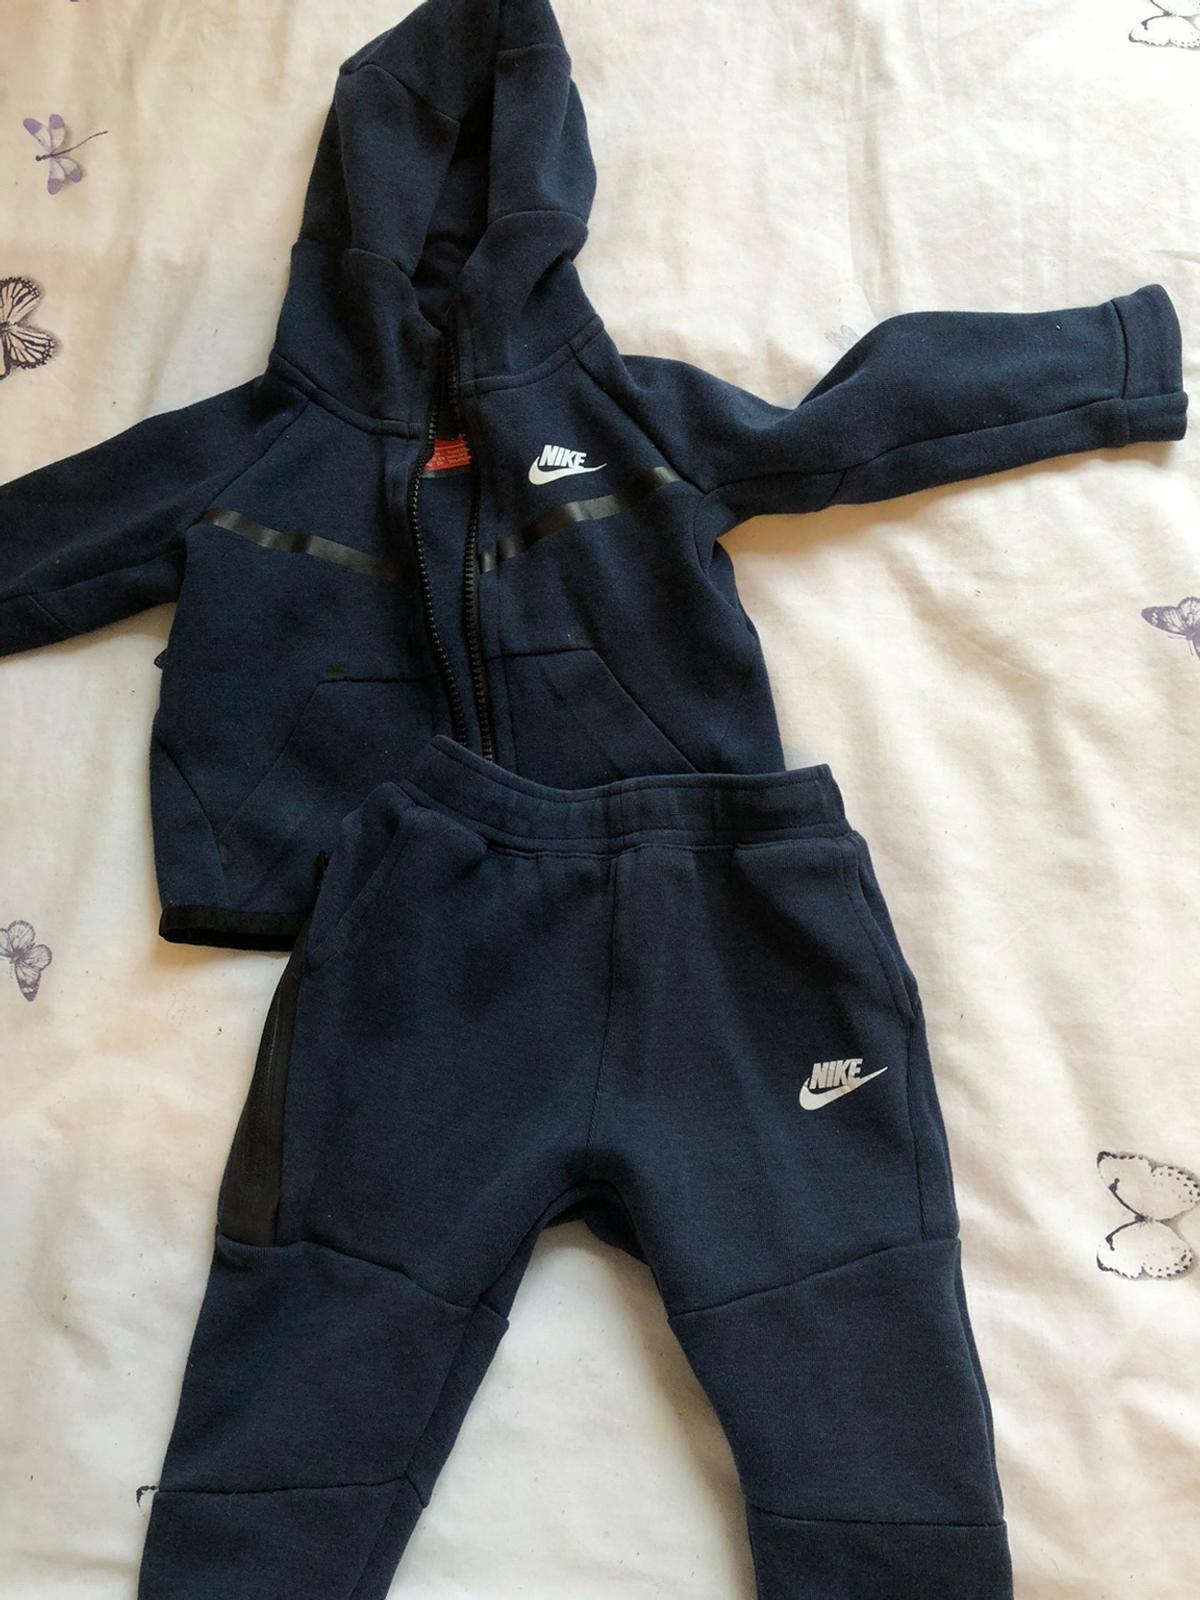 Boys navy blue nike tracksuit 12-18 months. In excellent condition. Offers are welcome.